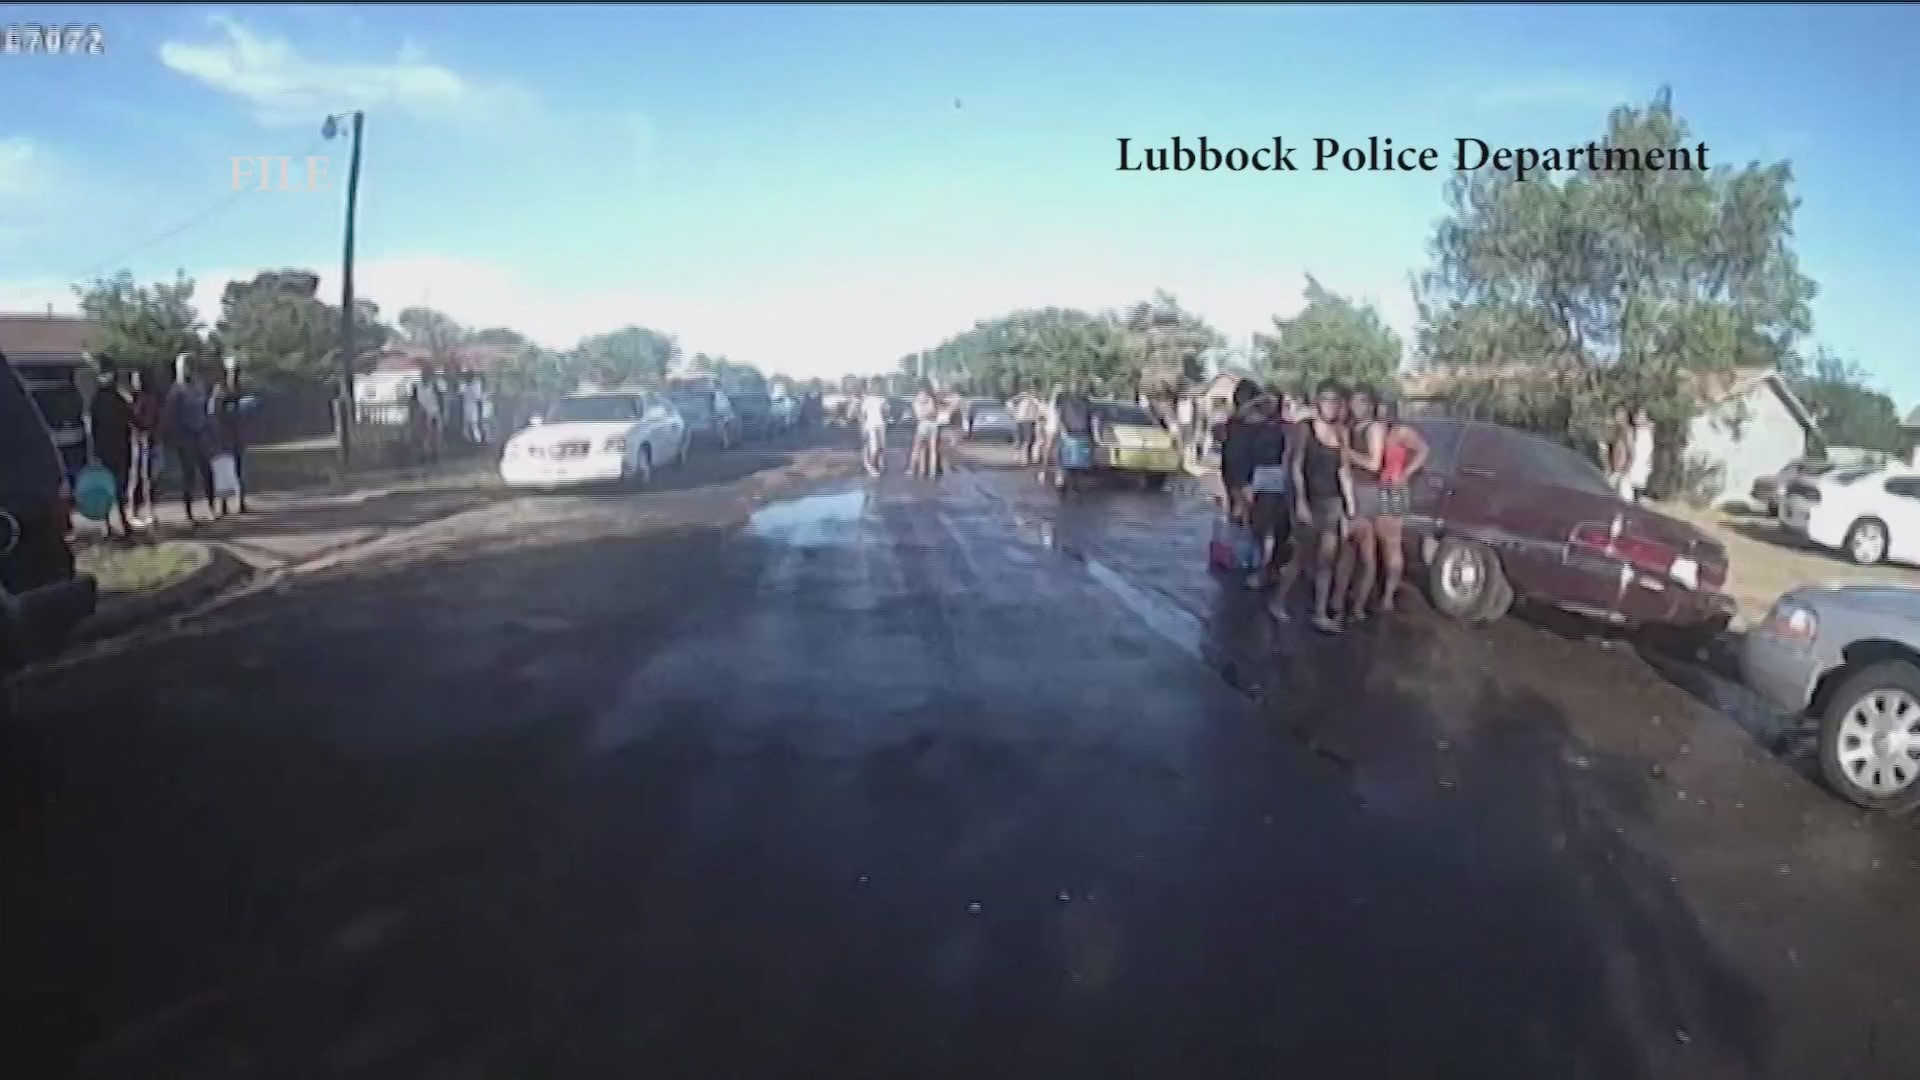 Water wars planned this weekend, East Lubbock members discuss 2018 controversy